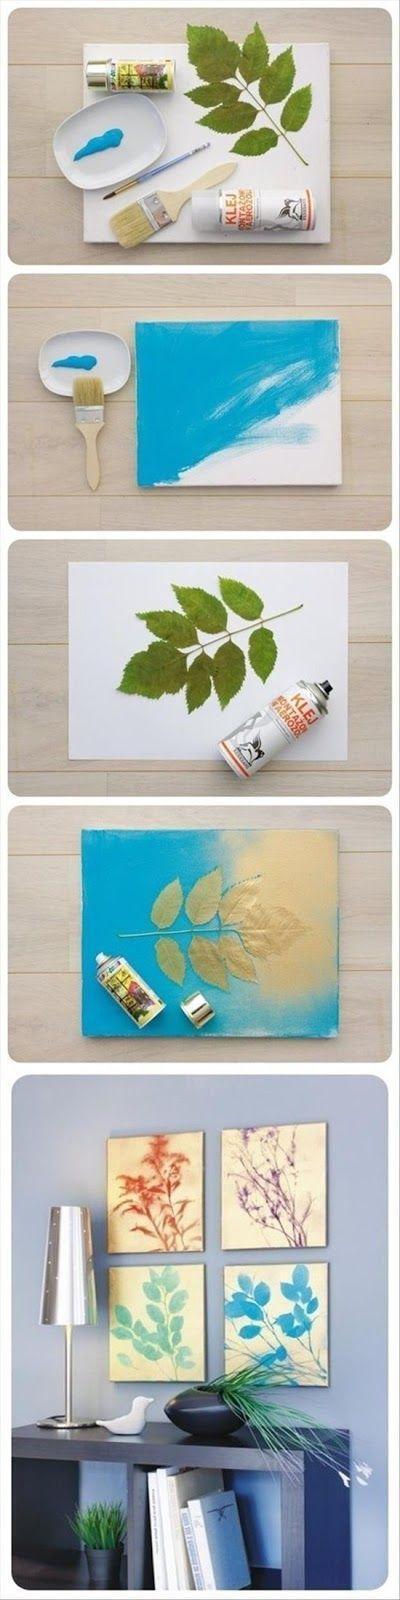 extraordinary-smart-diy-paper-wall-decor design1